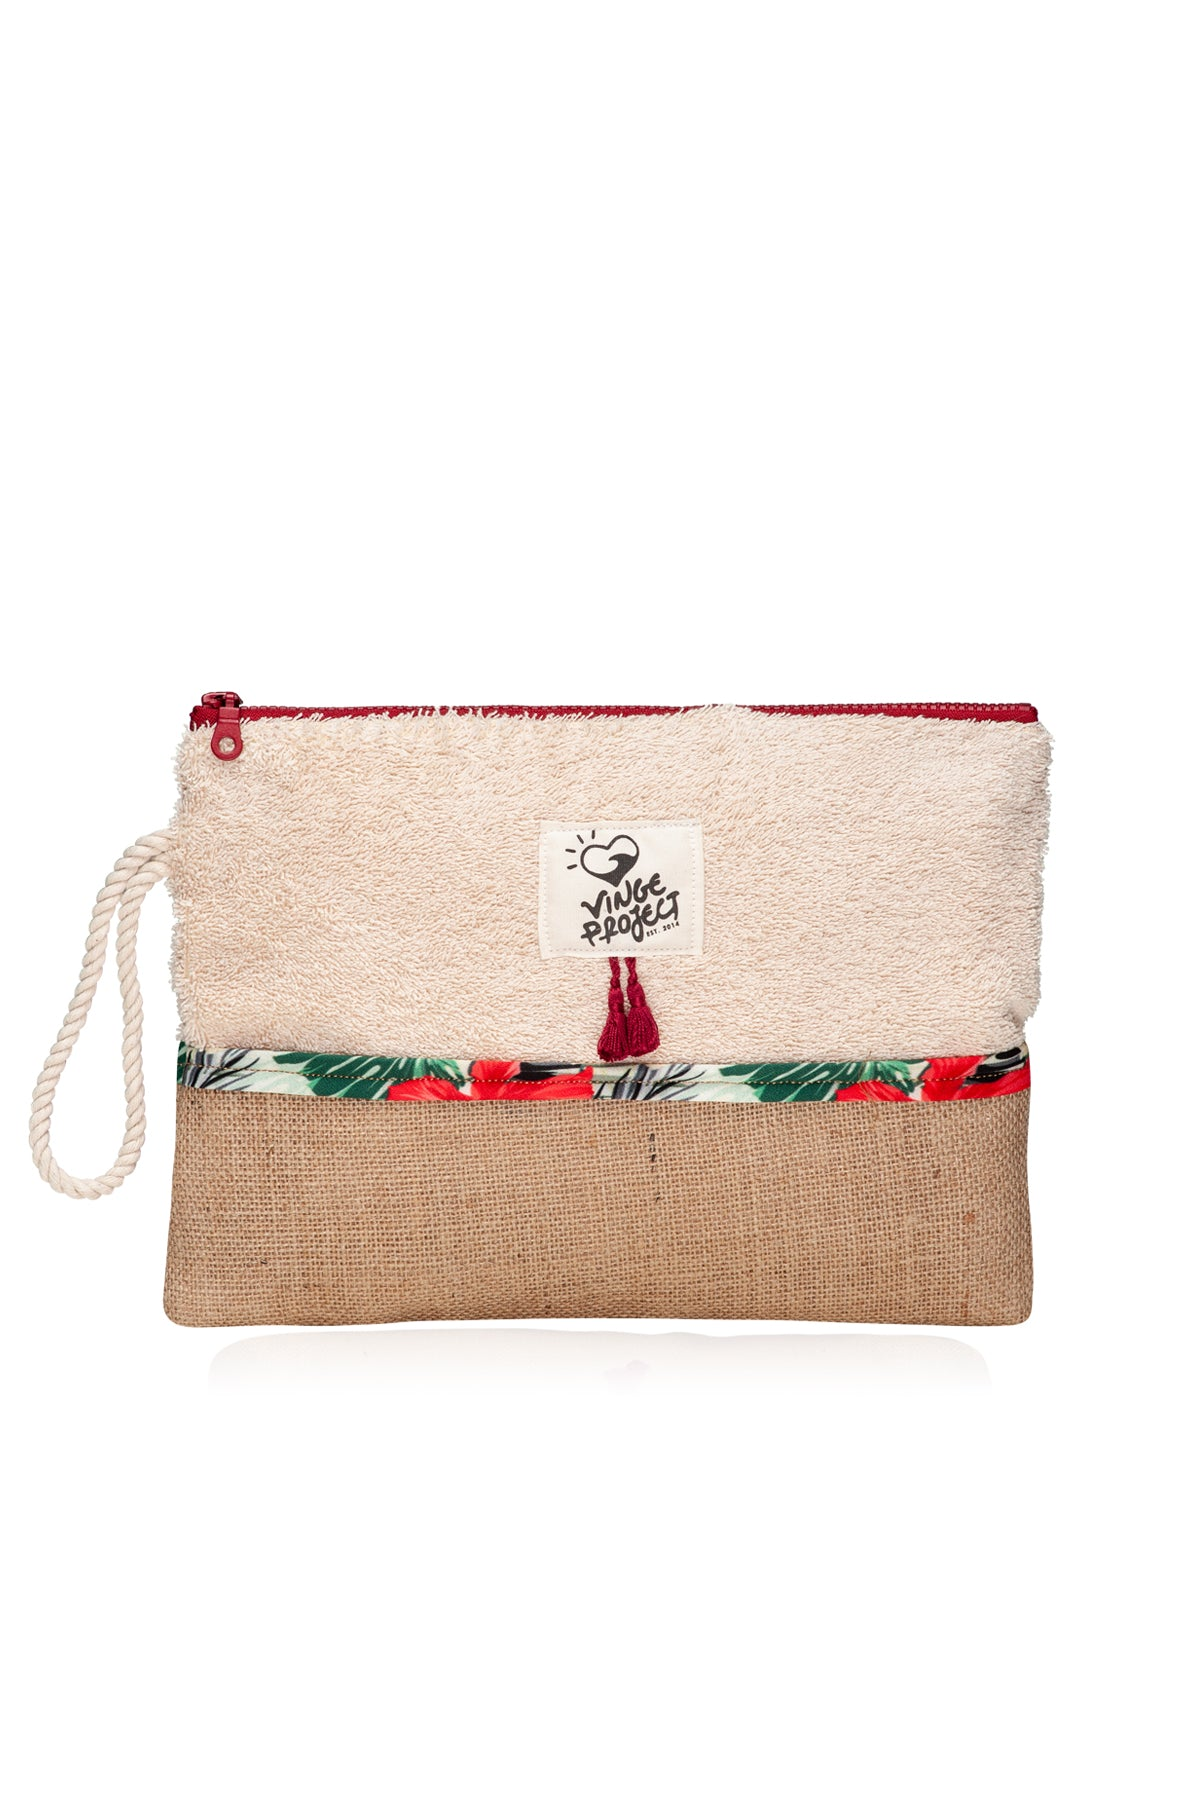 Crema 𝐌𝐞𝐝𝐢𝐮𝐦 Waterproof Beach Clutch Bag ( 4 LAST ITEMS )